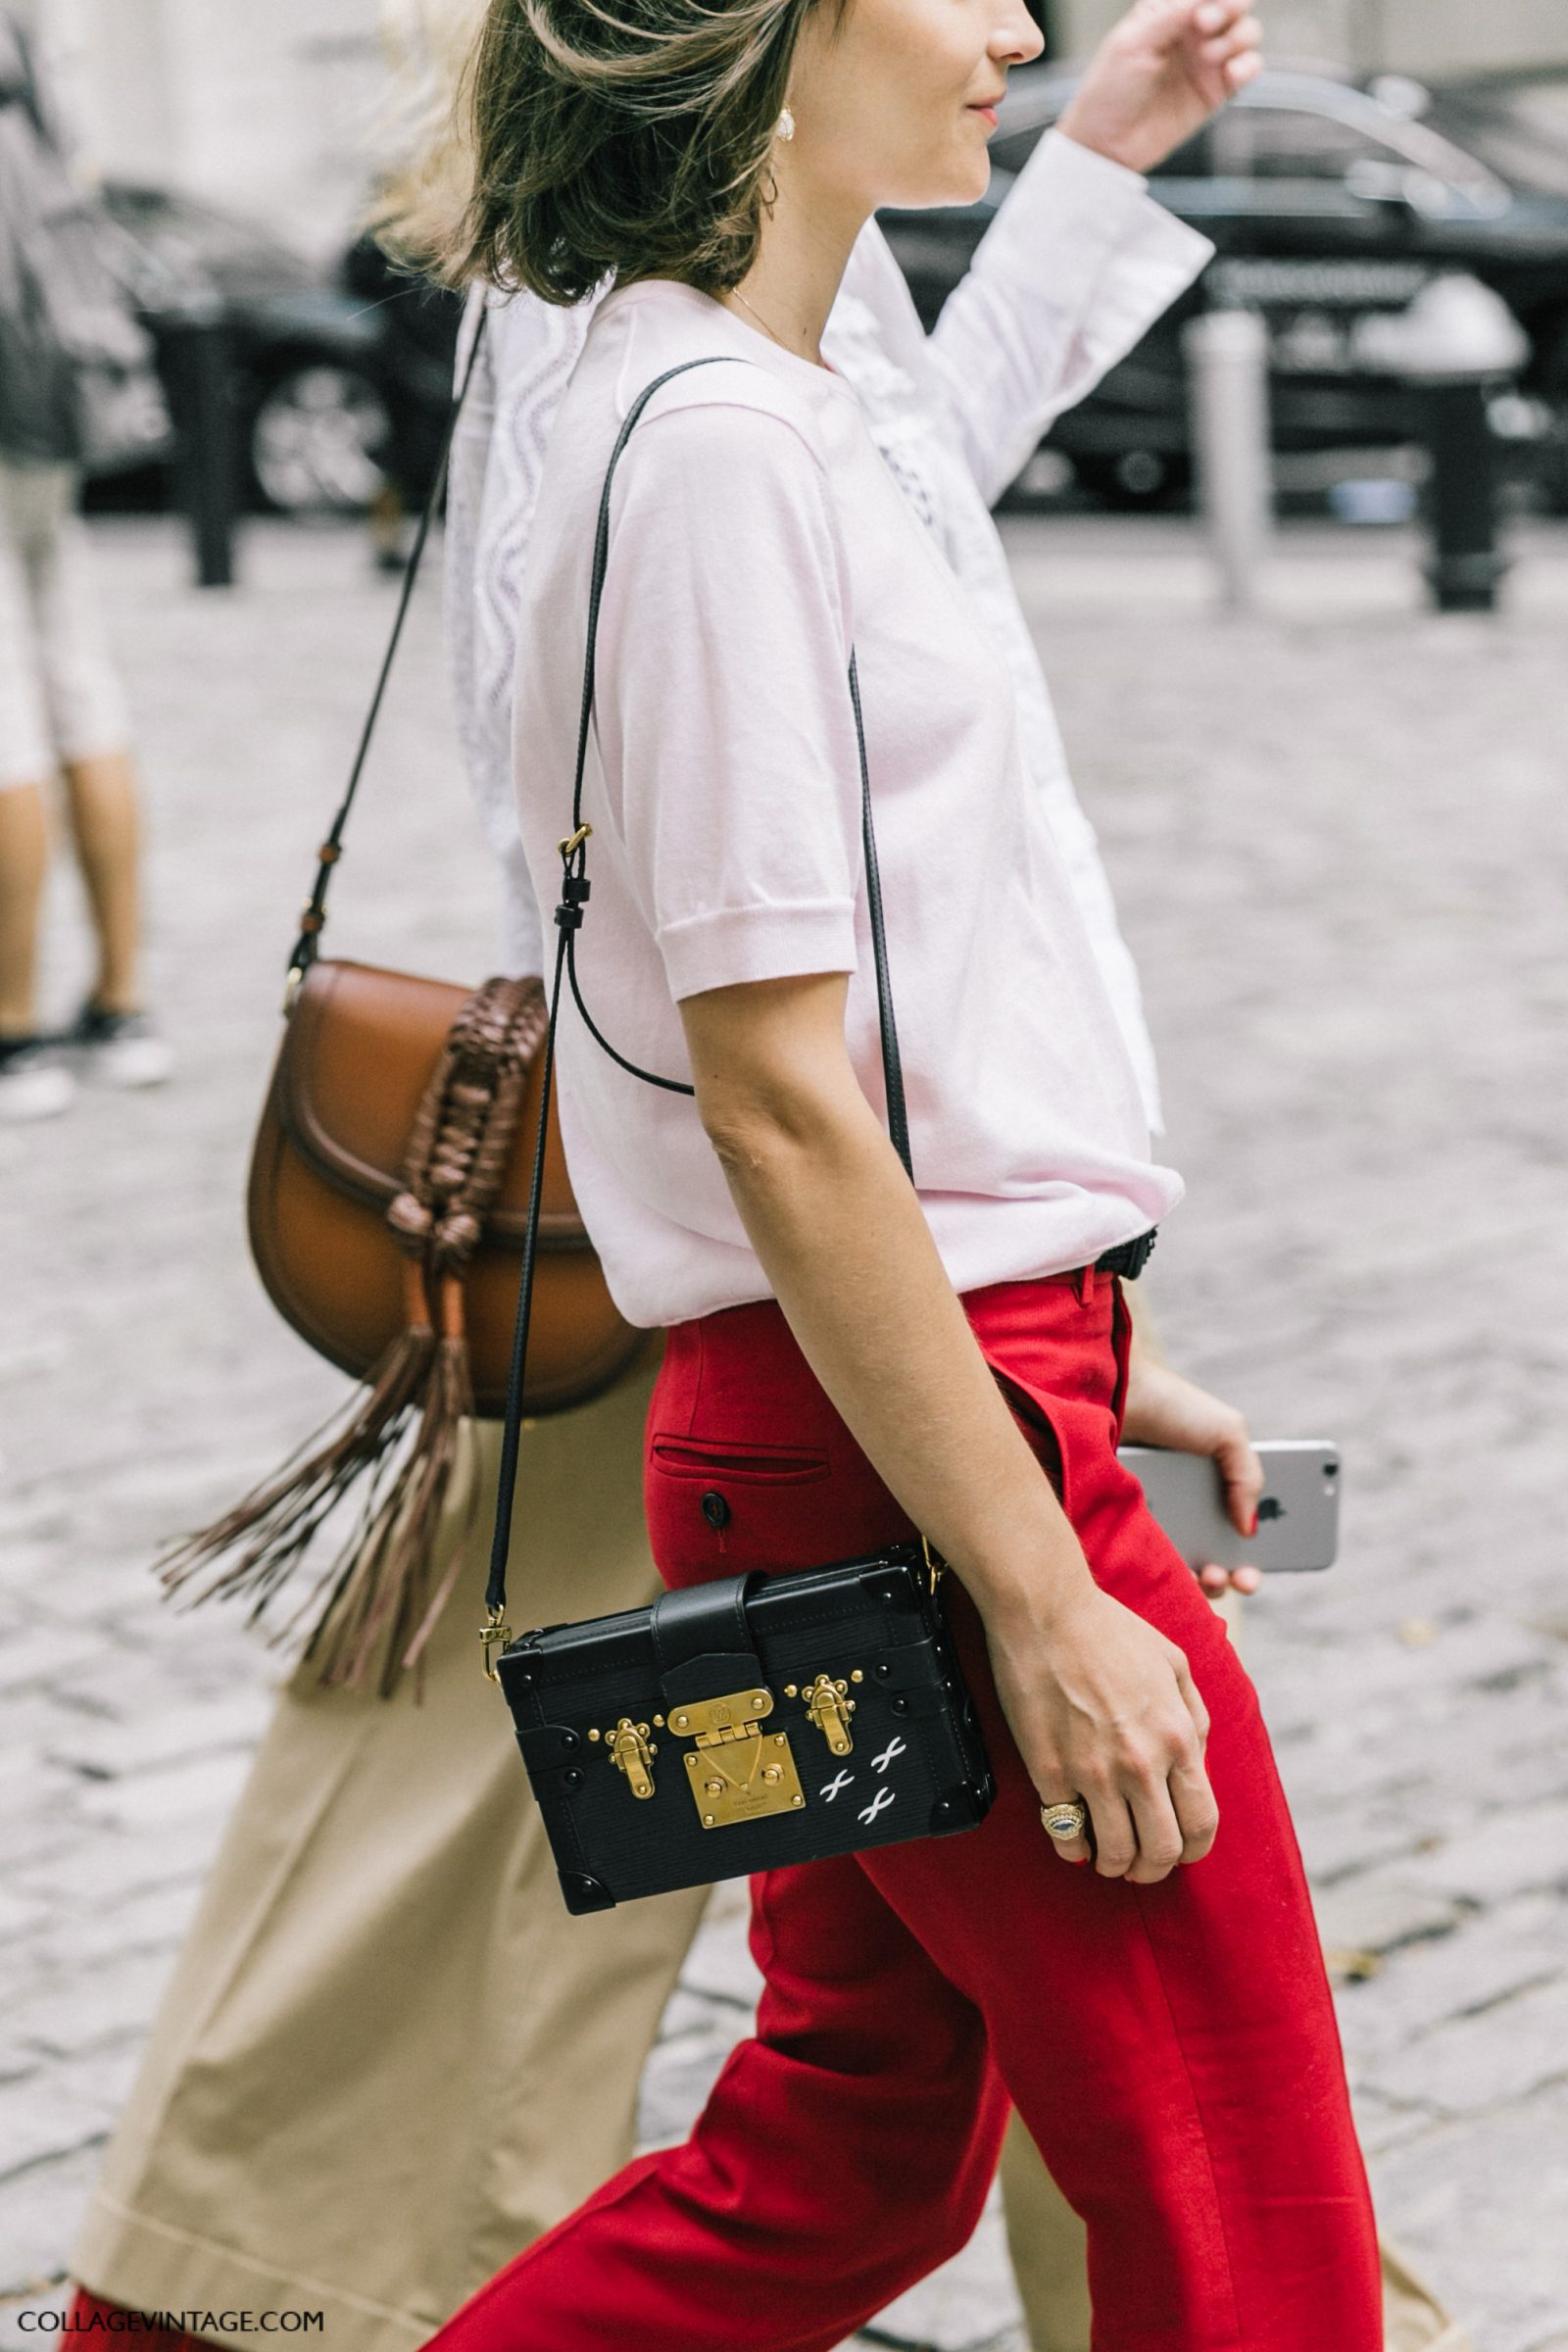 nyfw-new_york_fashion_week_ss17-street_style-outfits-collage_vintage-vintage-victoria_beckham-11